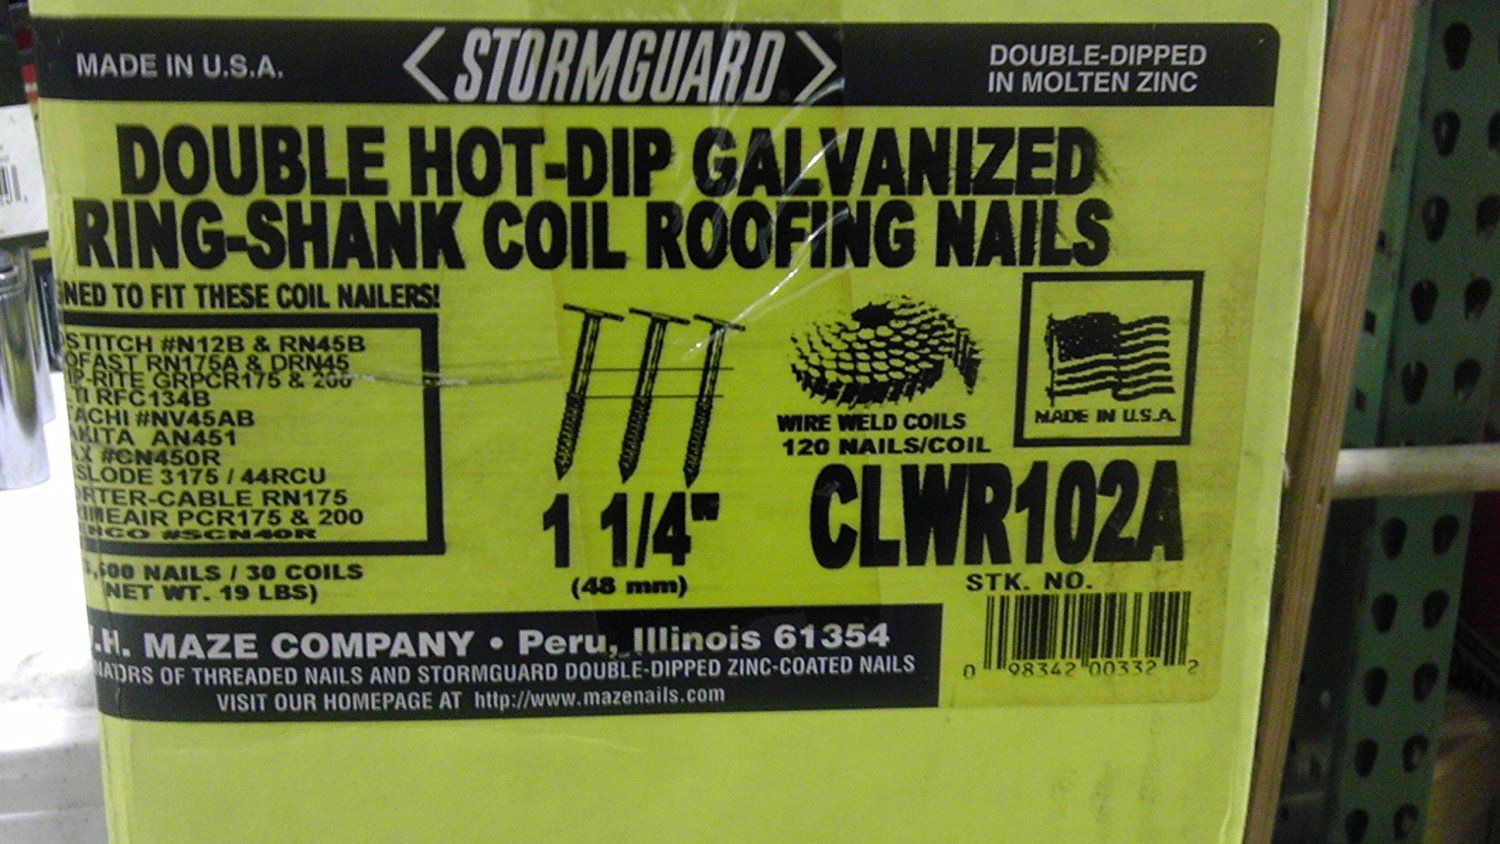 Clwr102a Stormguard Double Hot Dip Galvanized Ring Shank Coil Roofing Nails 1 1 4 3 600 Nails 30 Coils Wire Weld Coils 120 Nai Roofing Nails Hot Dip Roofing